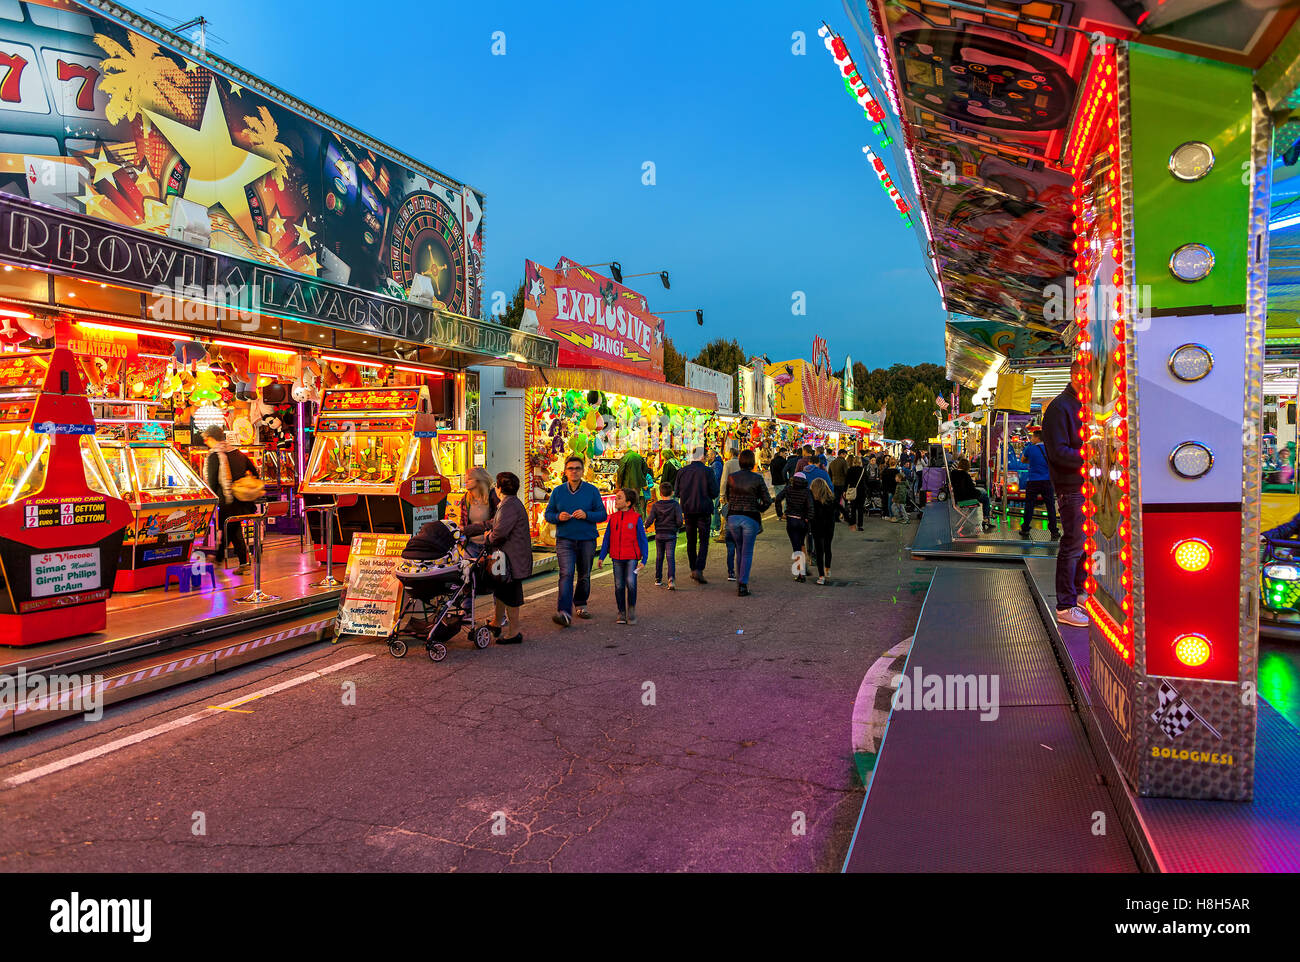 People walking by illuminated stalls and attraction at Luna Park in Alba, Italy. - Stock Image